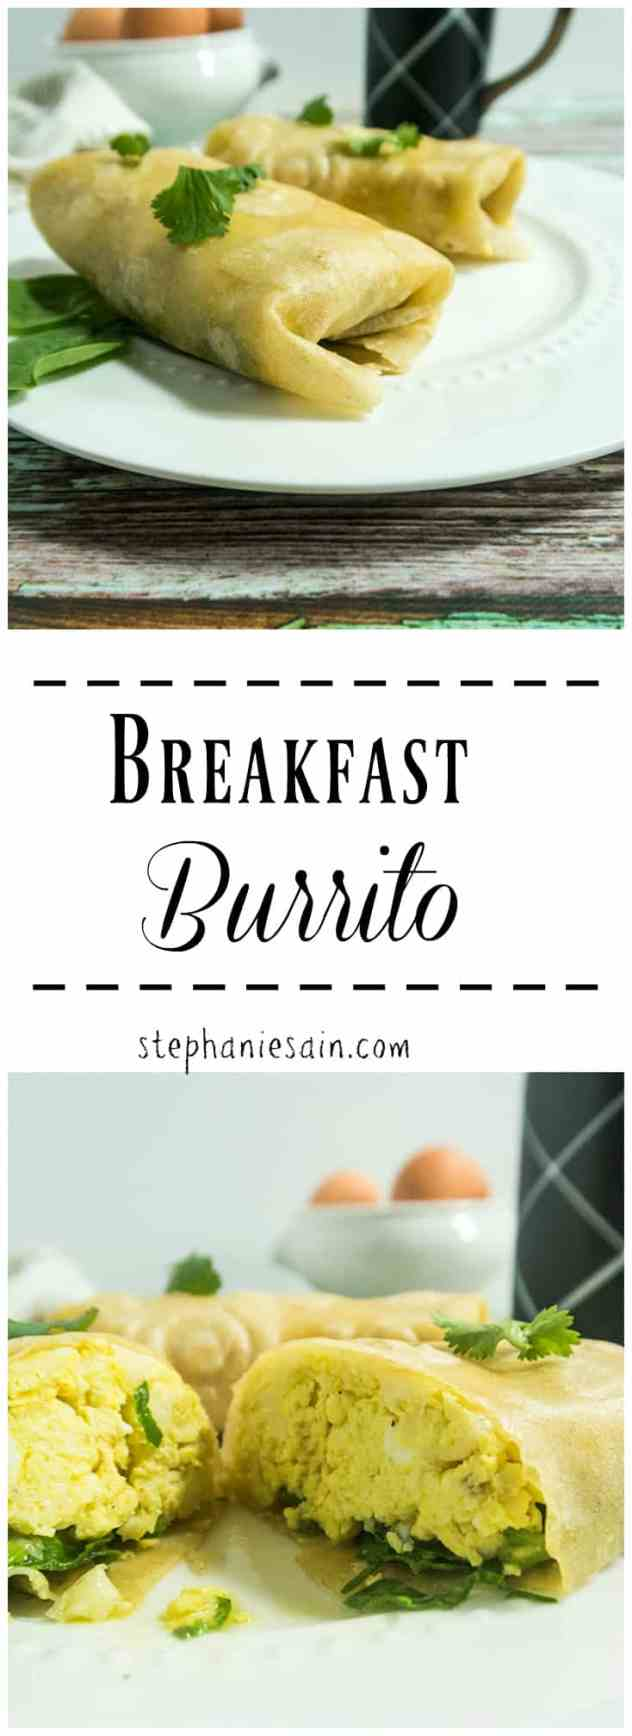 This Breakfast Burrito is the perfect Way to start the day. Loaded with scrambled eggs, spinach, and garlic for a tasty satisfying breakfast or brunch. Vegetarian & Gluten Free.